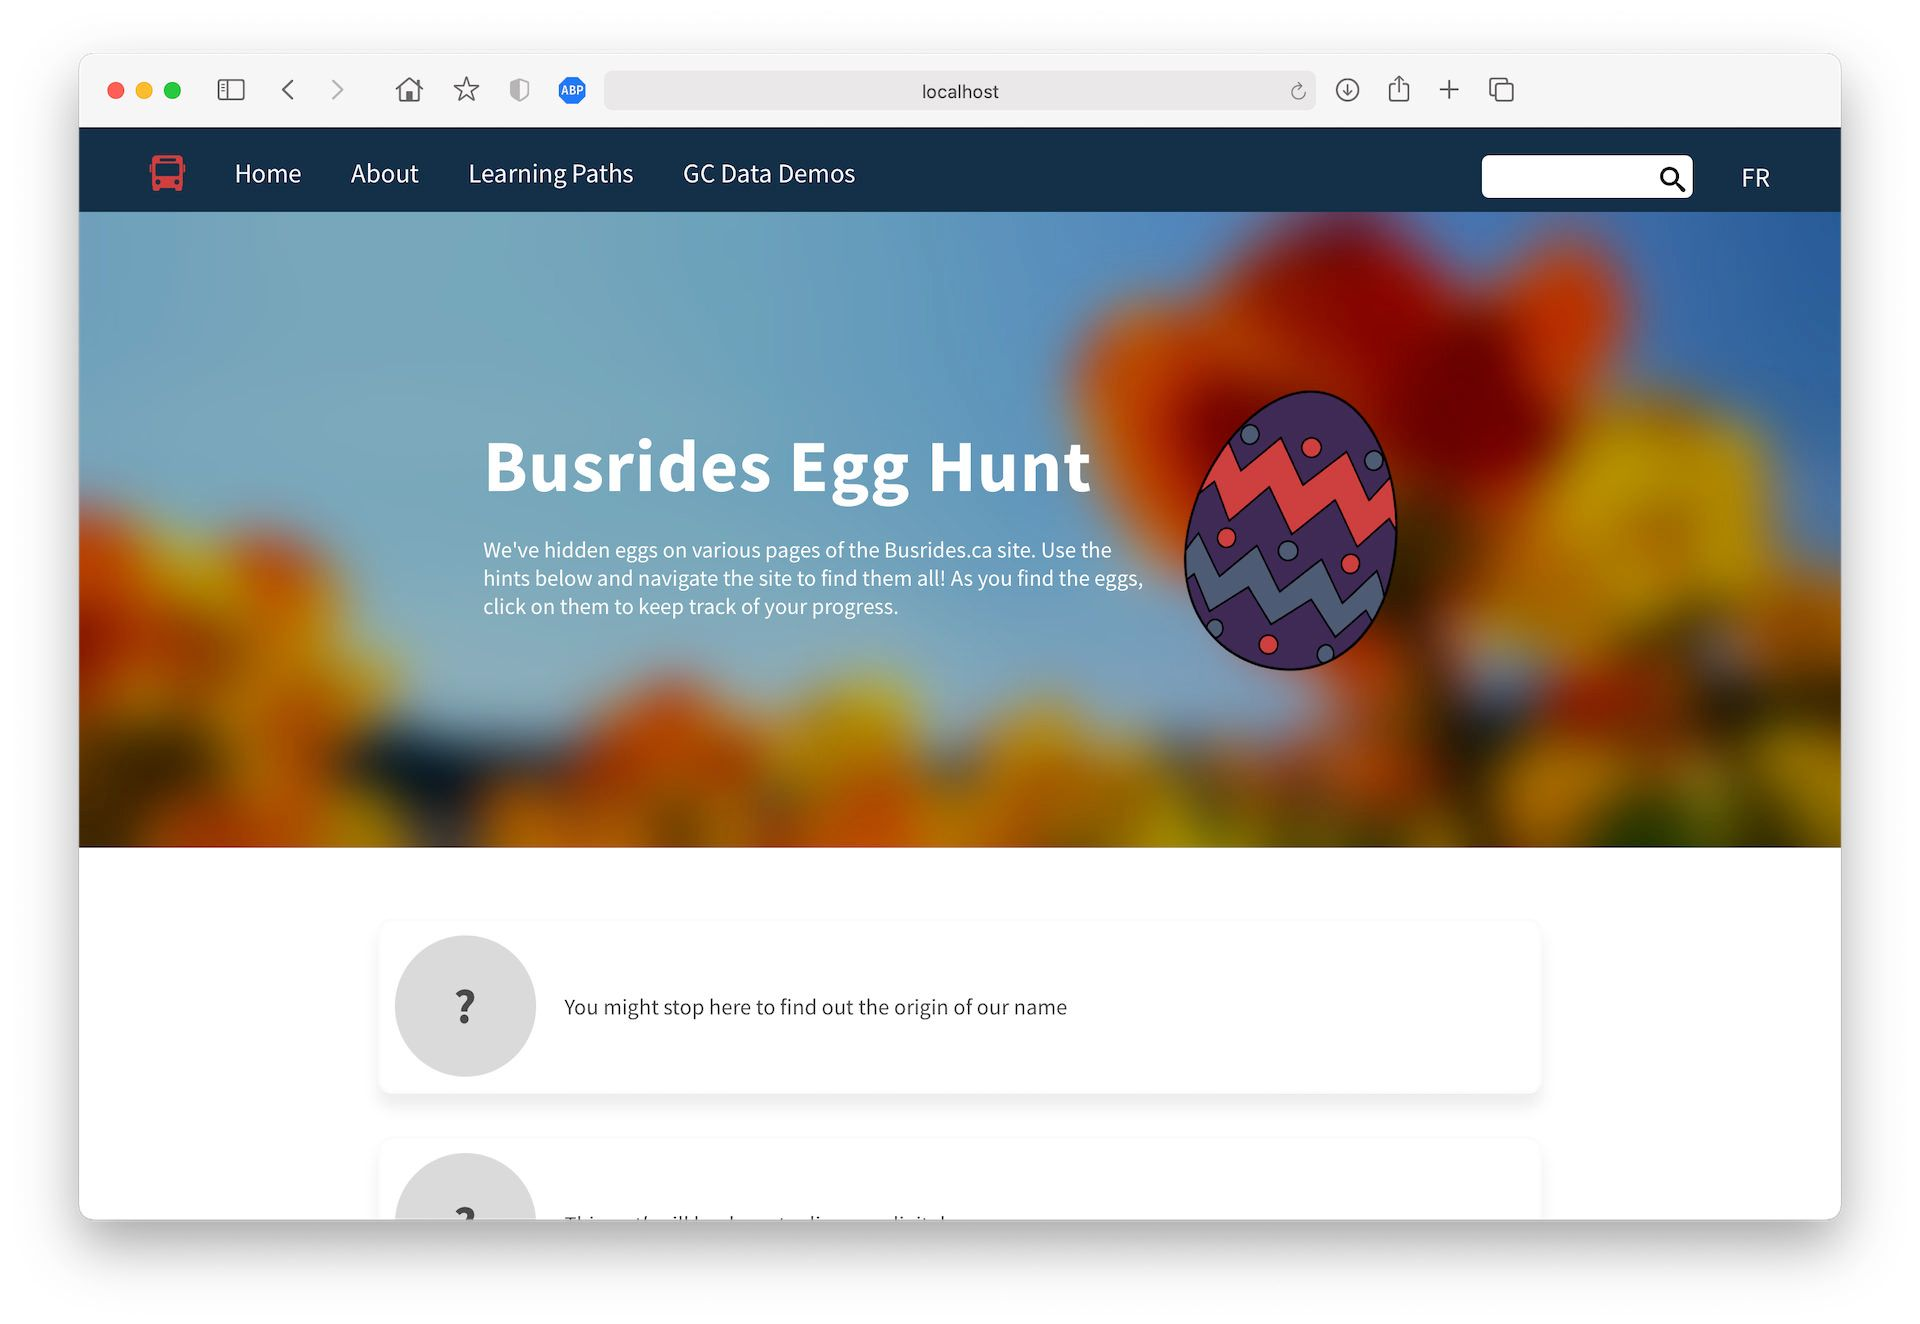 A screenshot of the Busrides Egg Hunt page